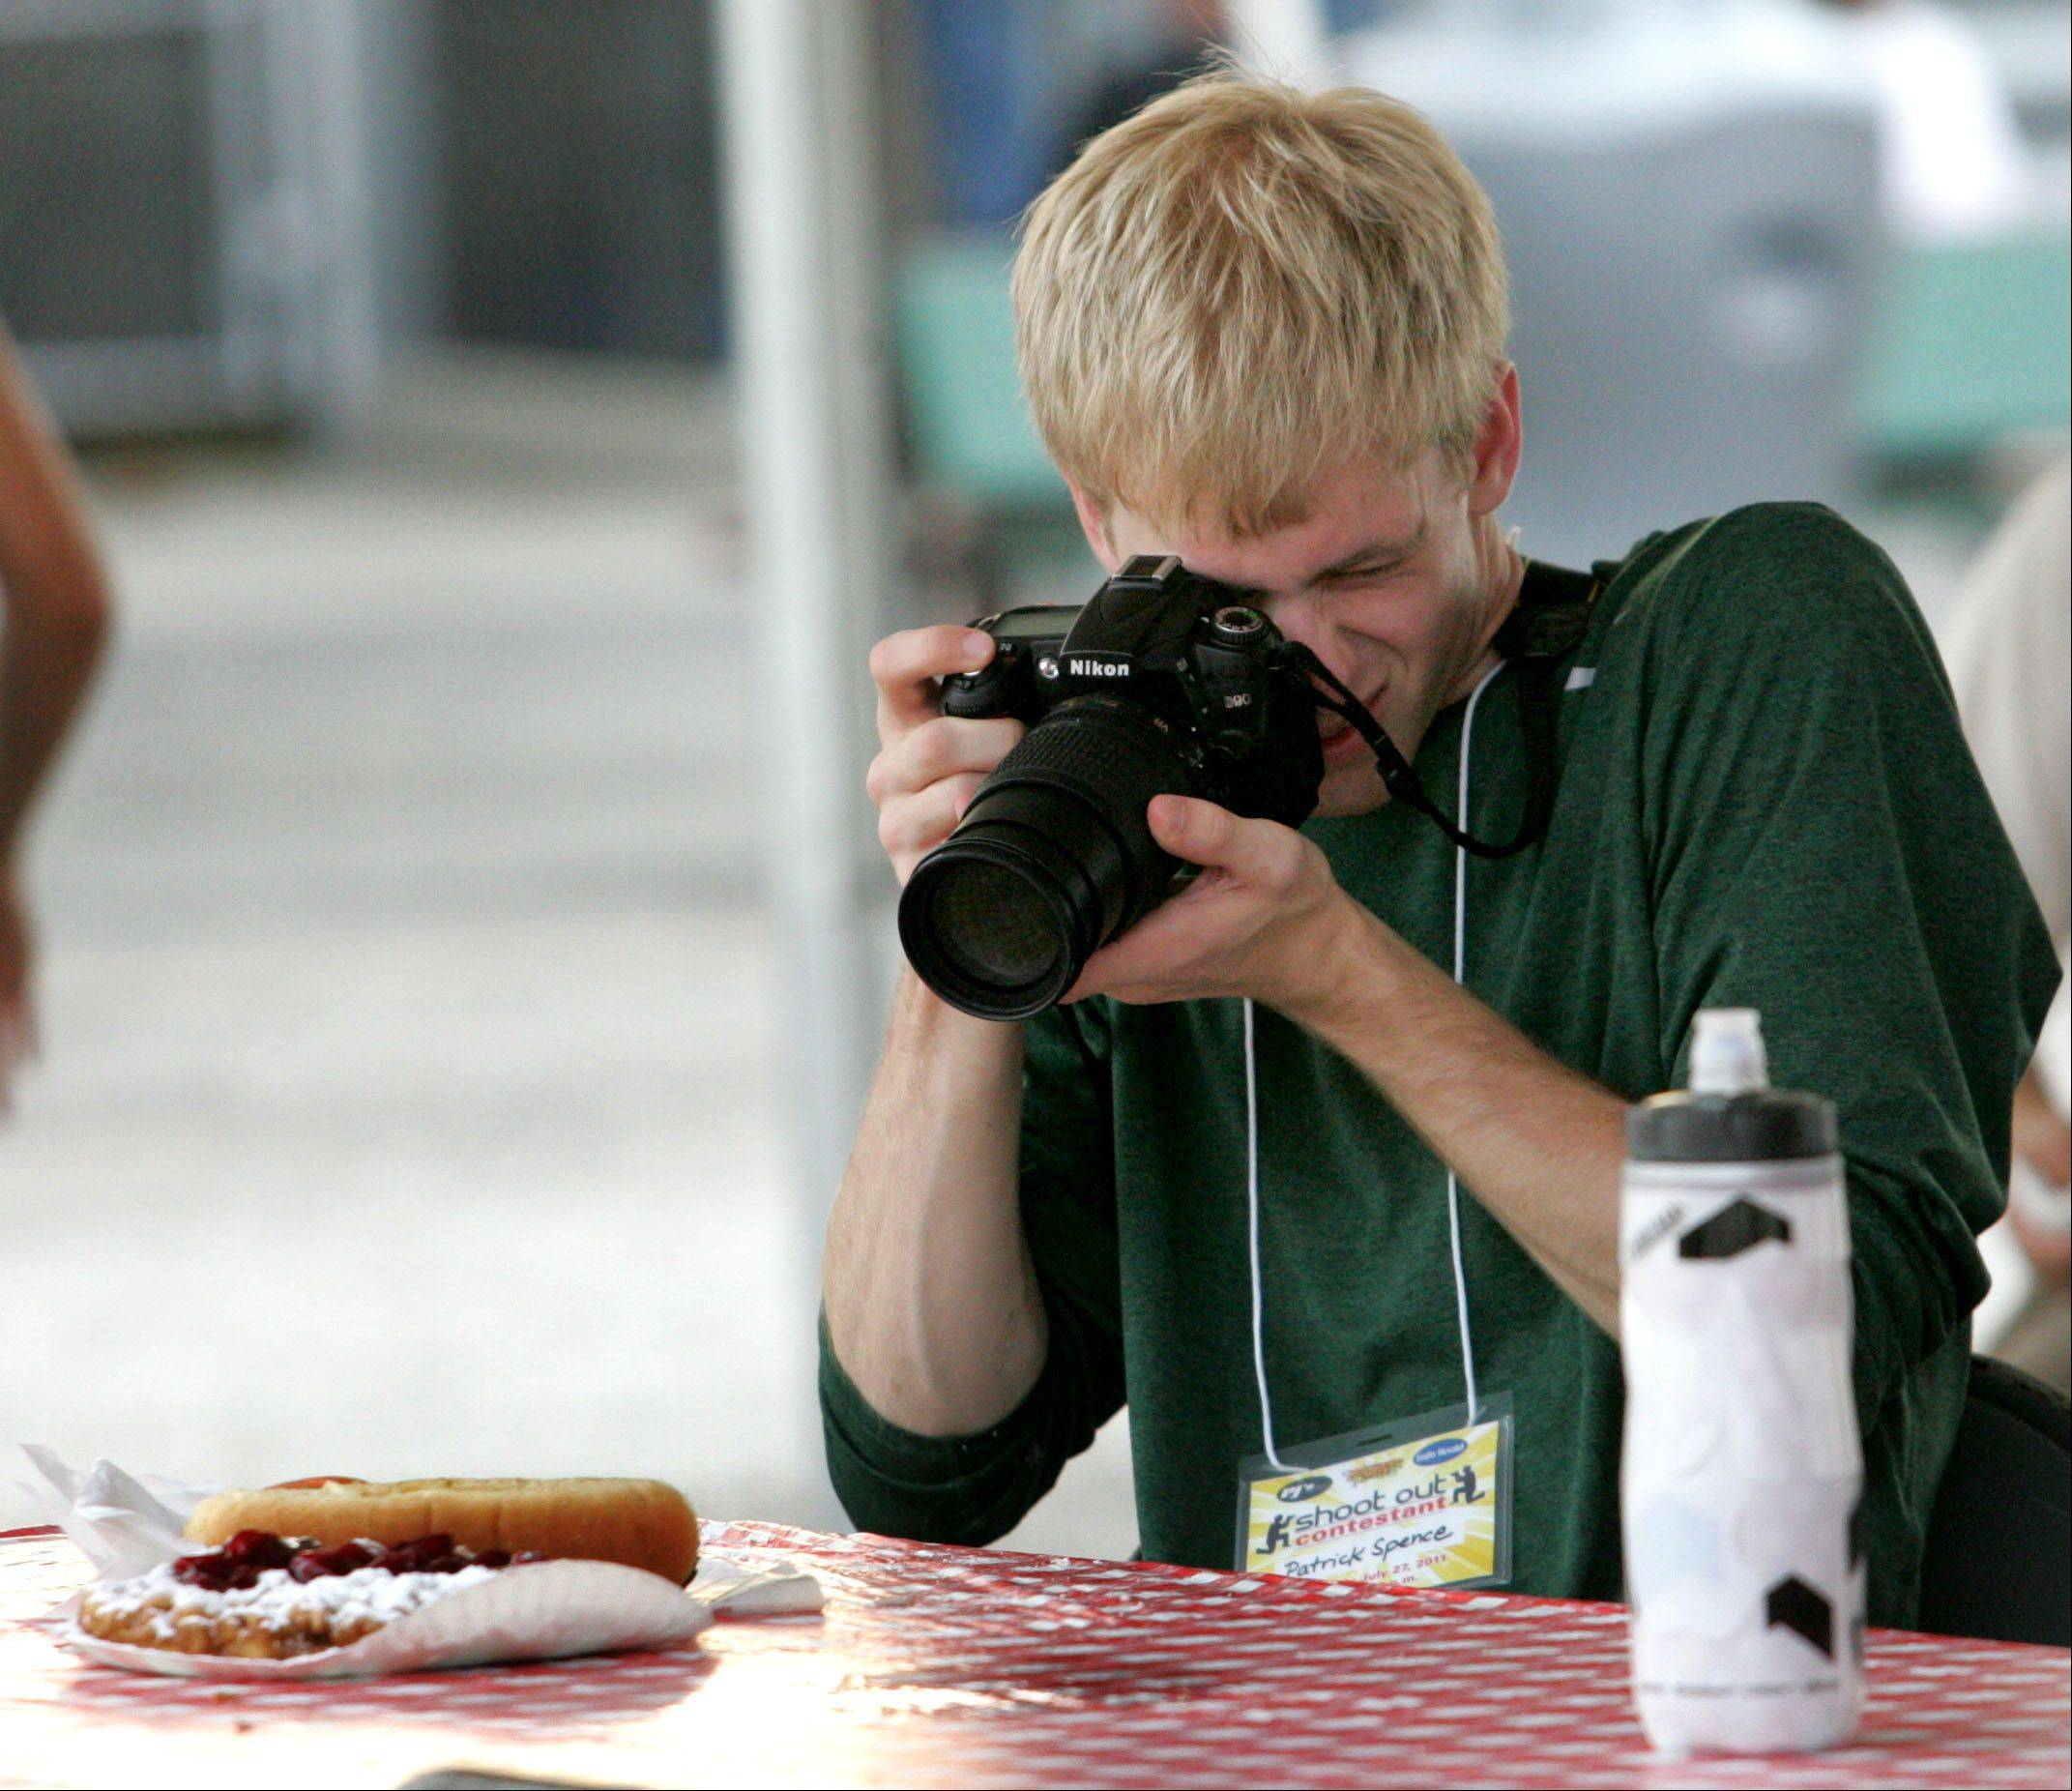 Patrick Spence of Naperville works at shooting his first-place photo for the first Photography Shoot-Out contest at the DuPage County Fair in Wheaton.